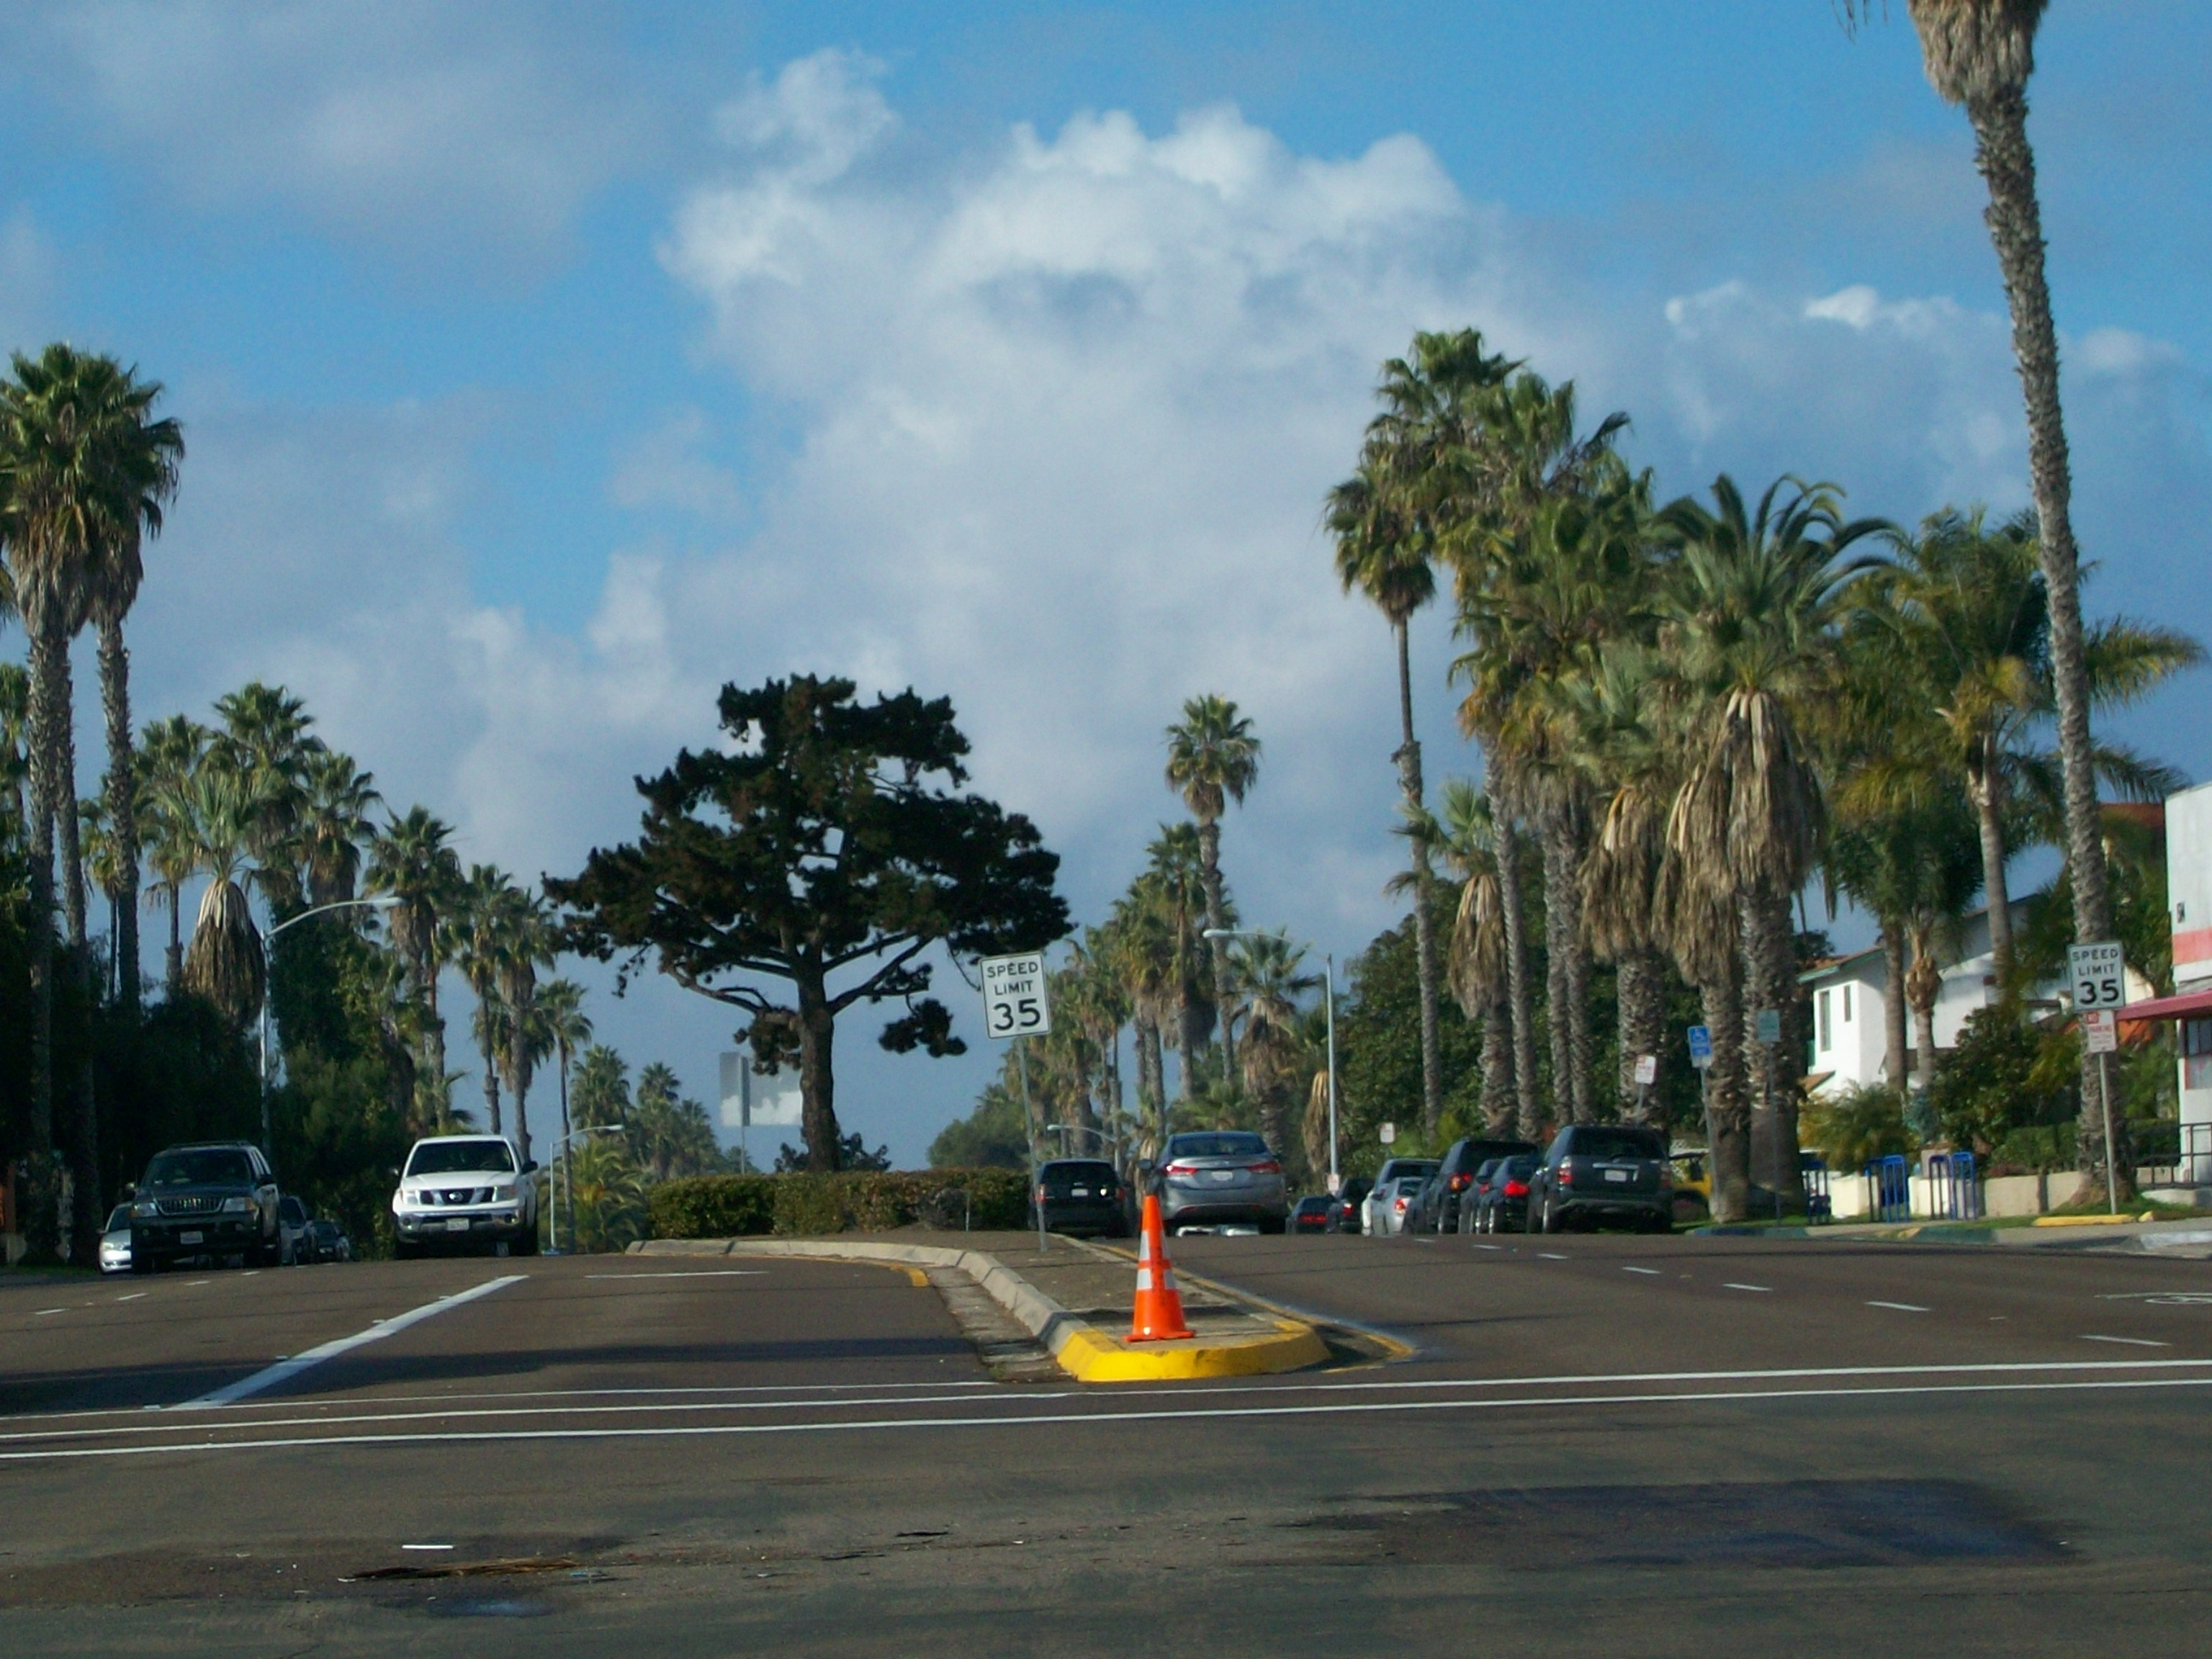 Looking west on Garnet Ave. in Pacific Beach on a winter day.